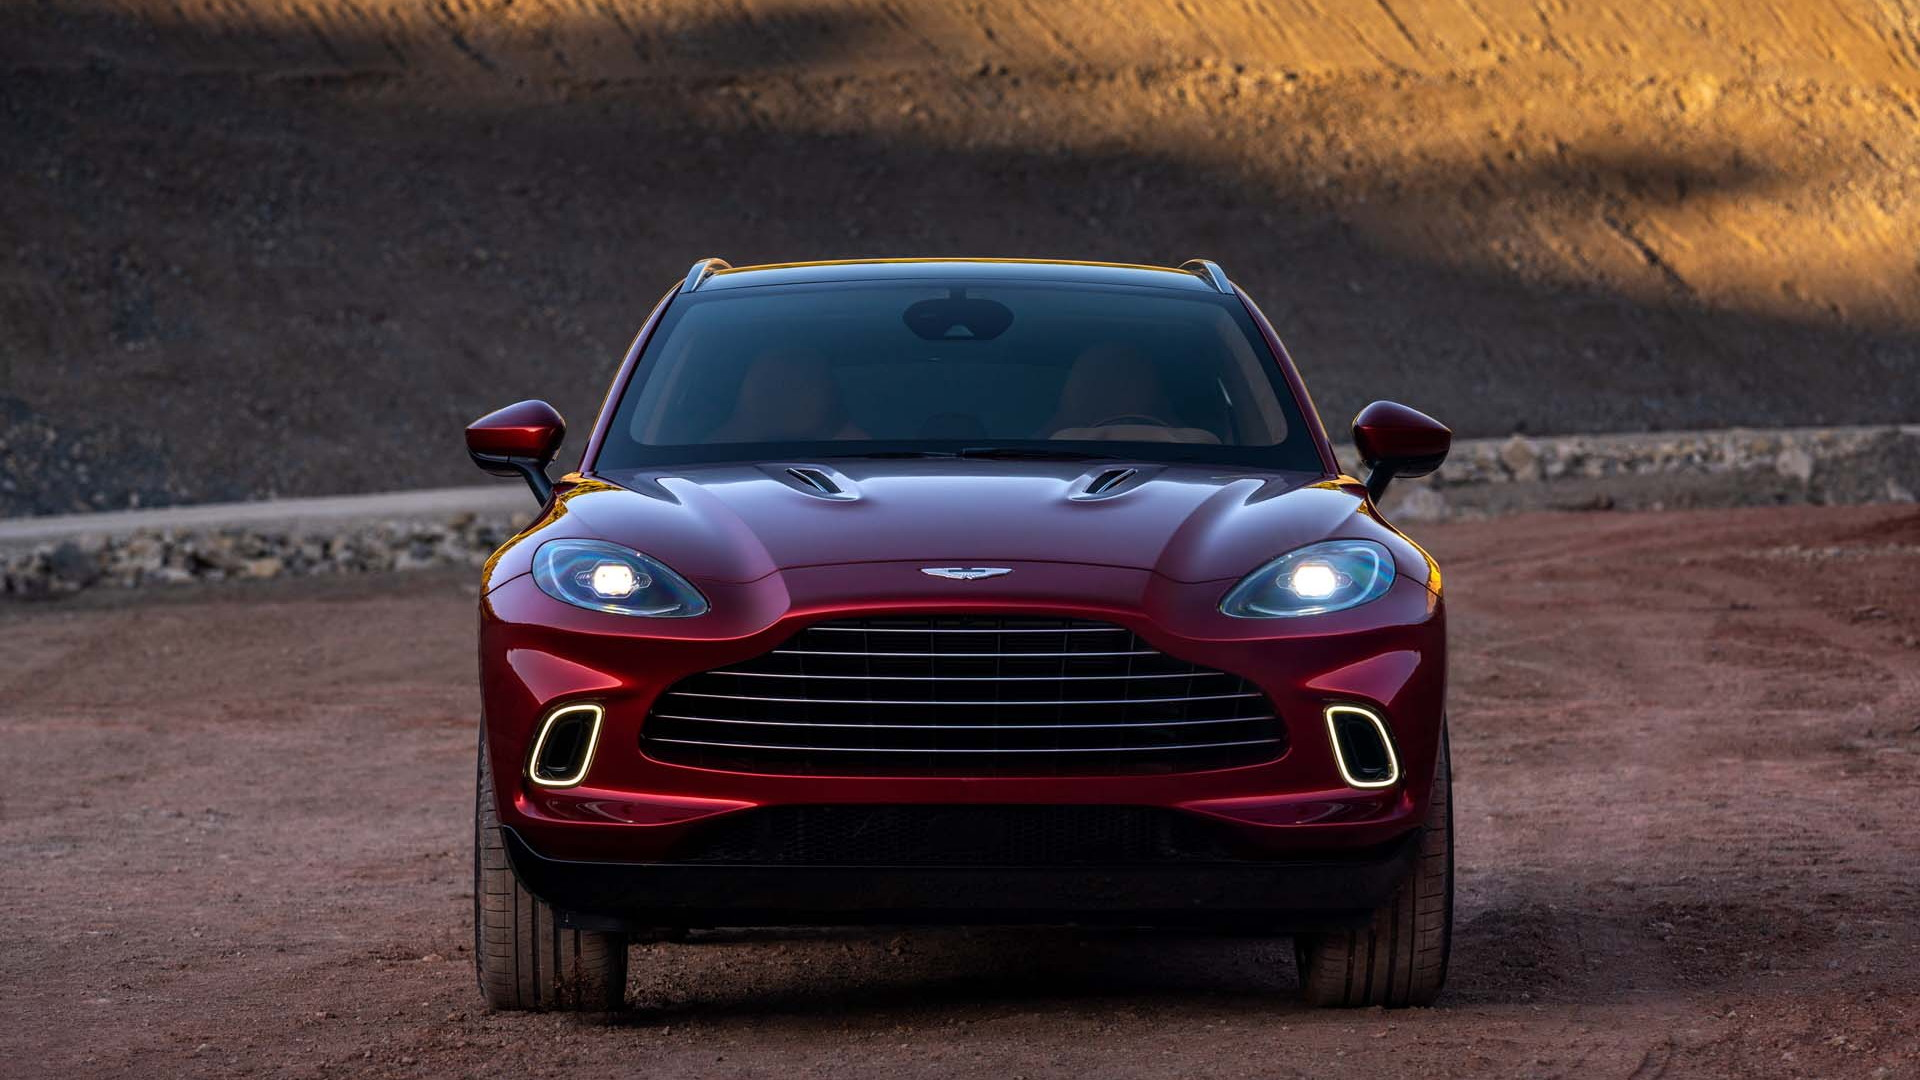 New 2020 Aston Martin DBX - Aston's bold SUV finally revealed